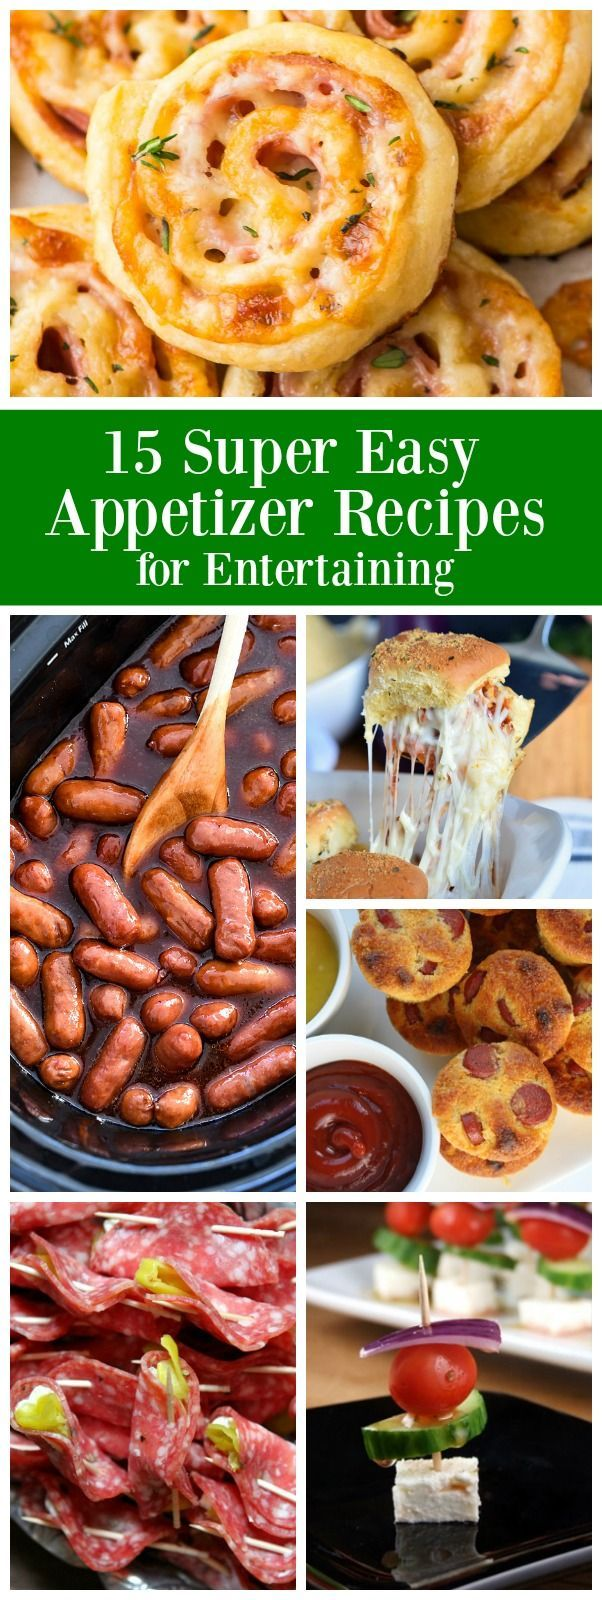 15 Super Easy Appetizer Recipes for Entertaining: including Grape Jelly Meatballs, Easy Dip Recipes, Little Smokies, Pinwheels and more!